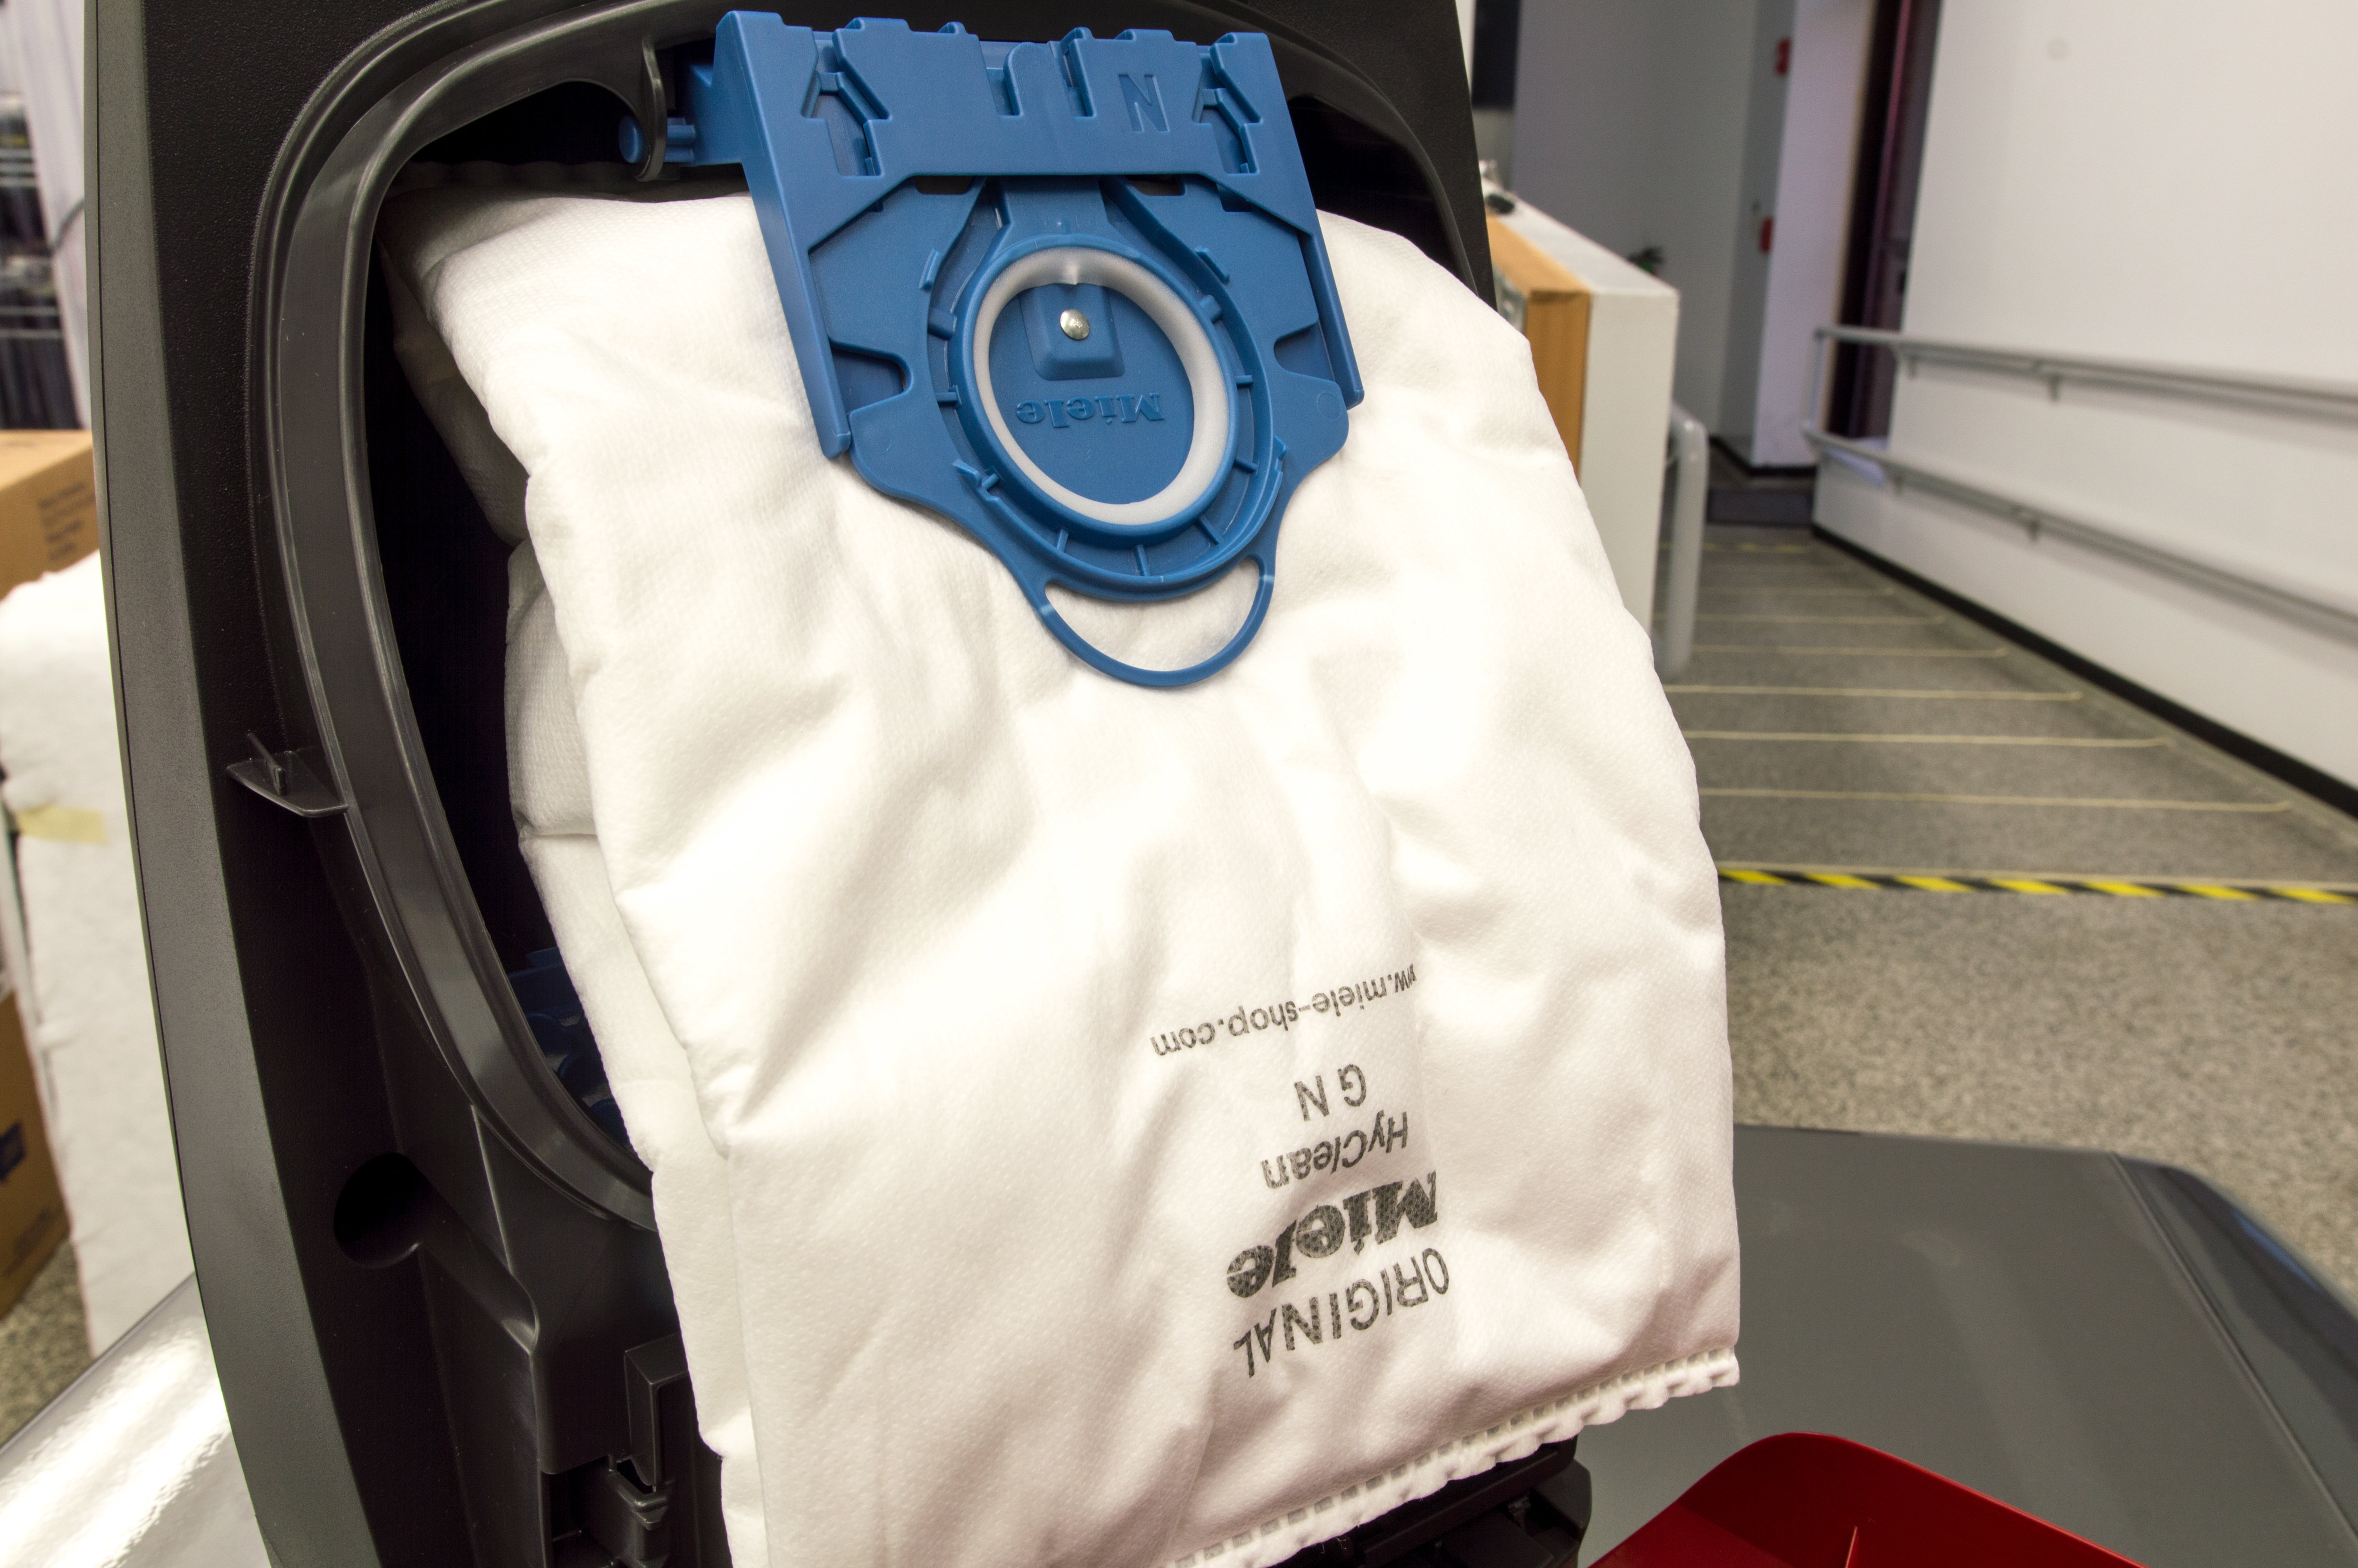 Miele vacuums use bags instead of canisters. They cost around $6 each and hold 4.7 quarts of dirt.